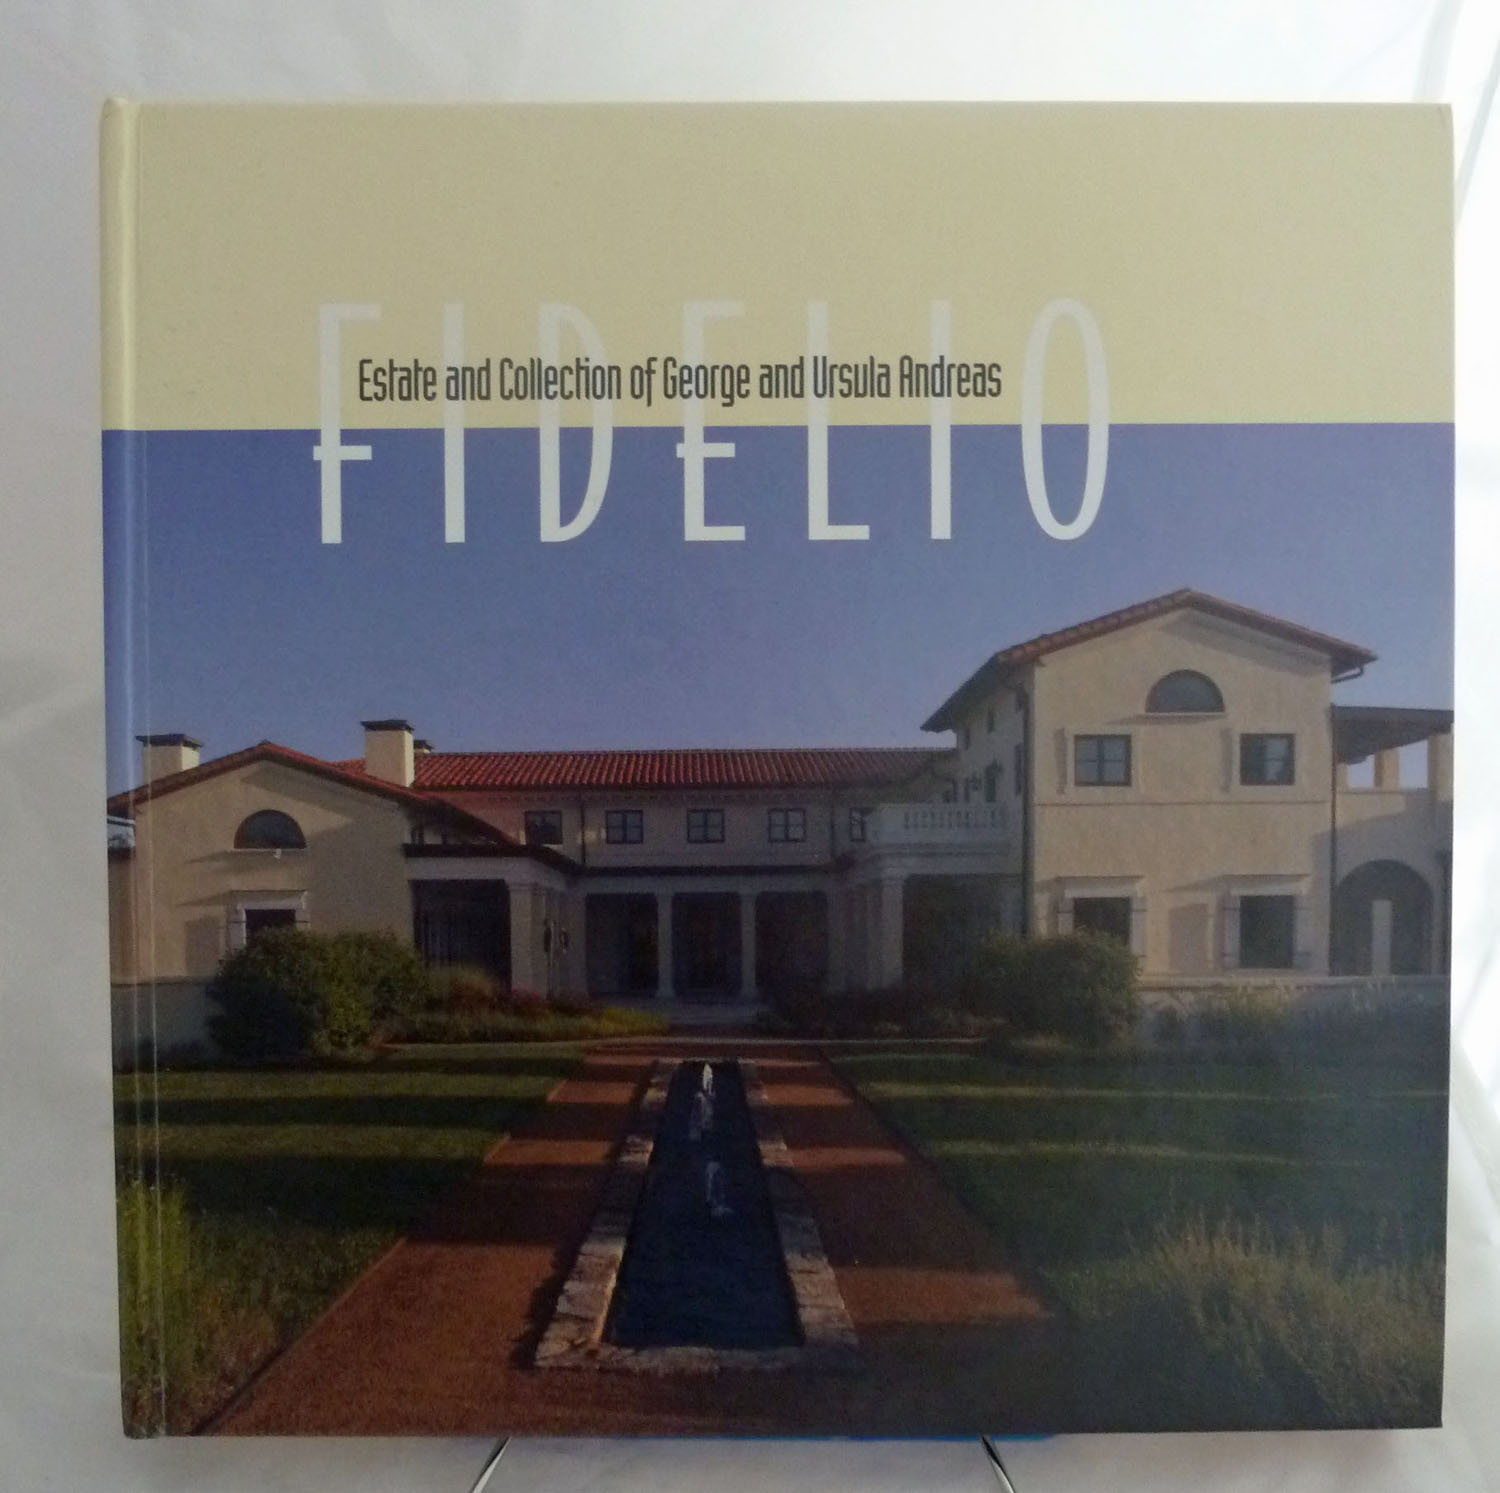 FIDELIO. Estate and Collection of George and Ursula Andreas.